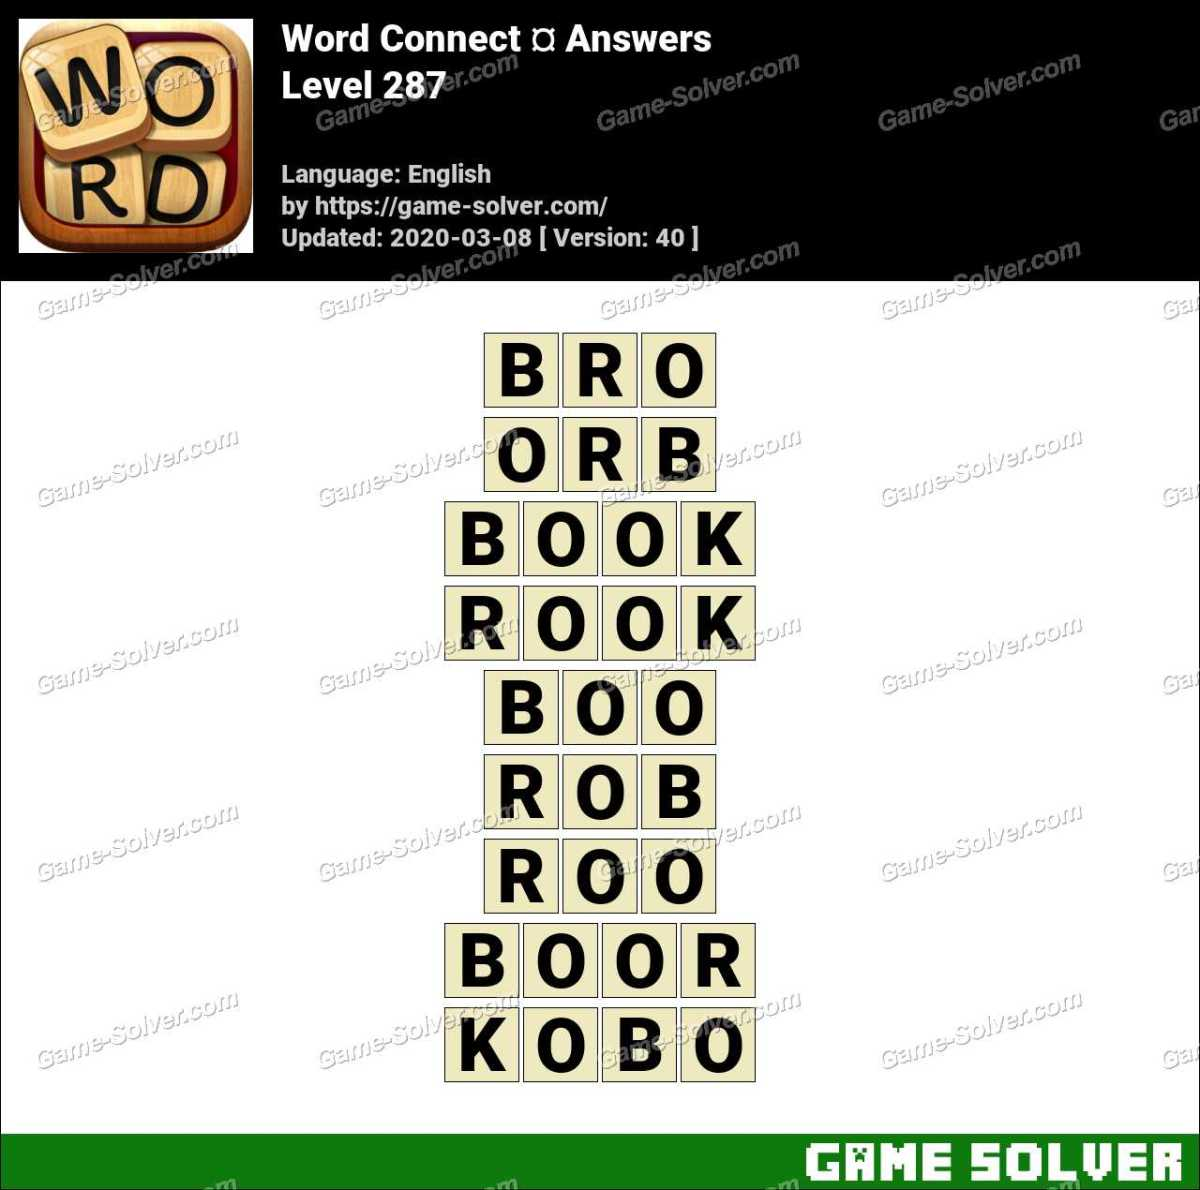 Word Connect Level 287 Answers